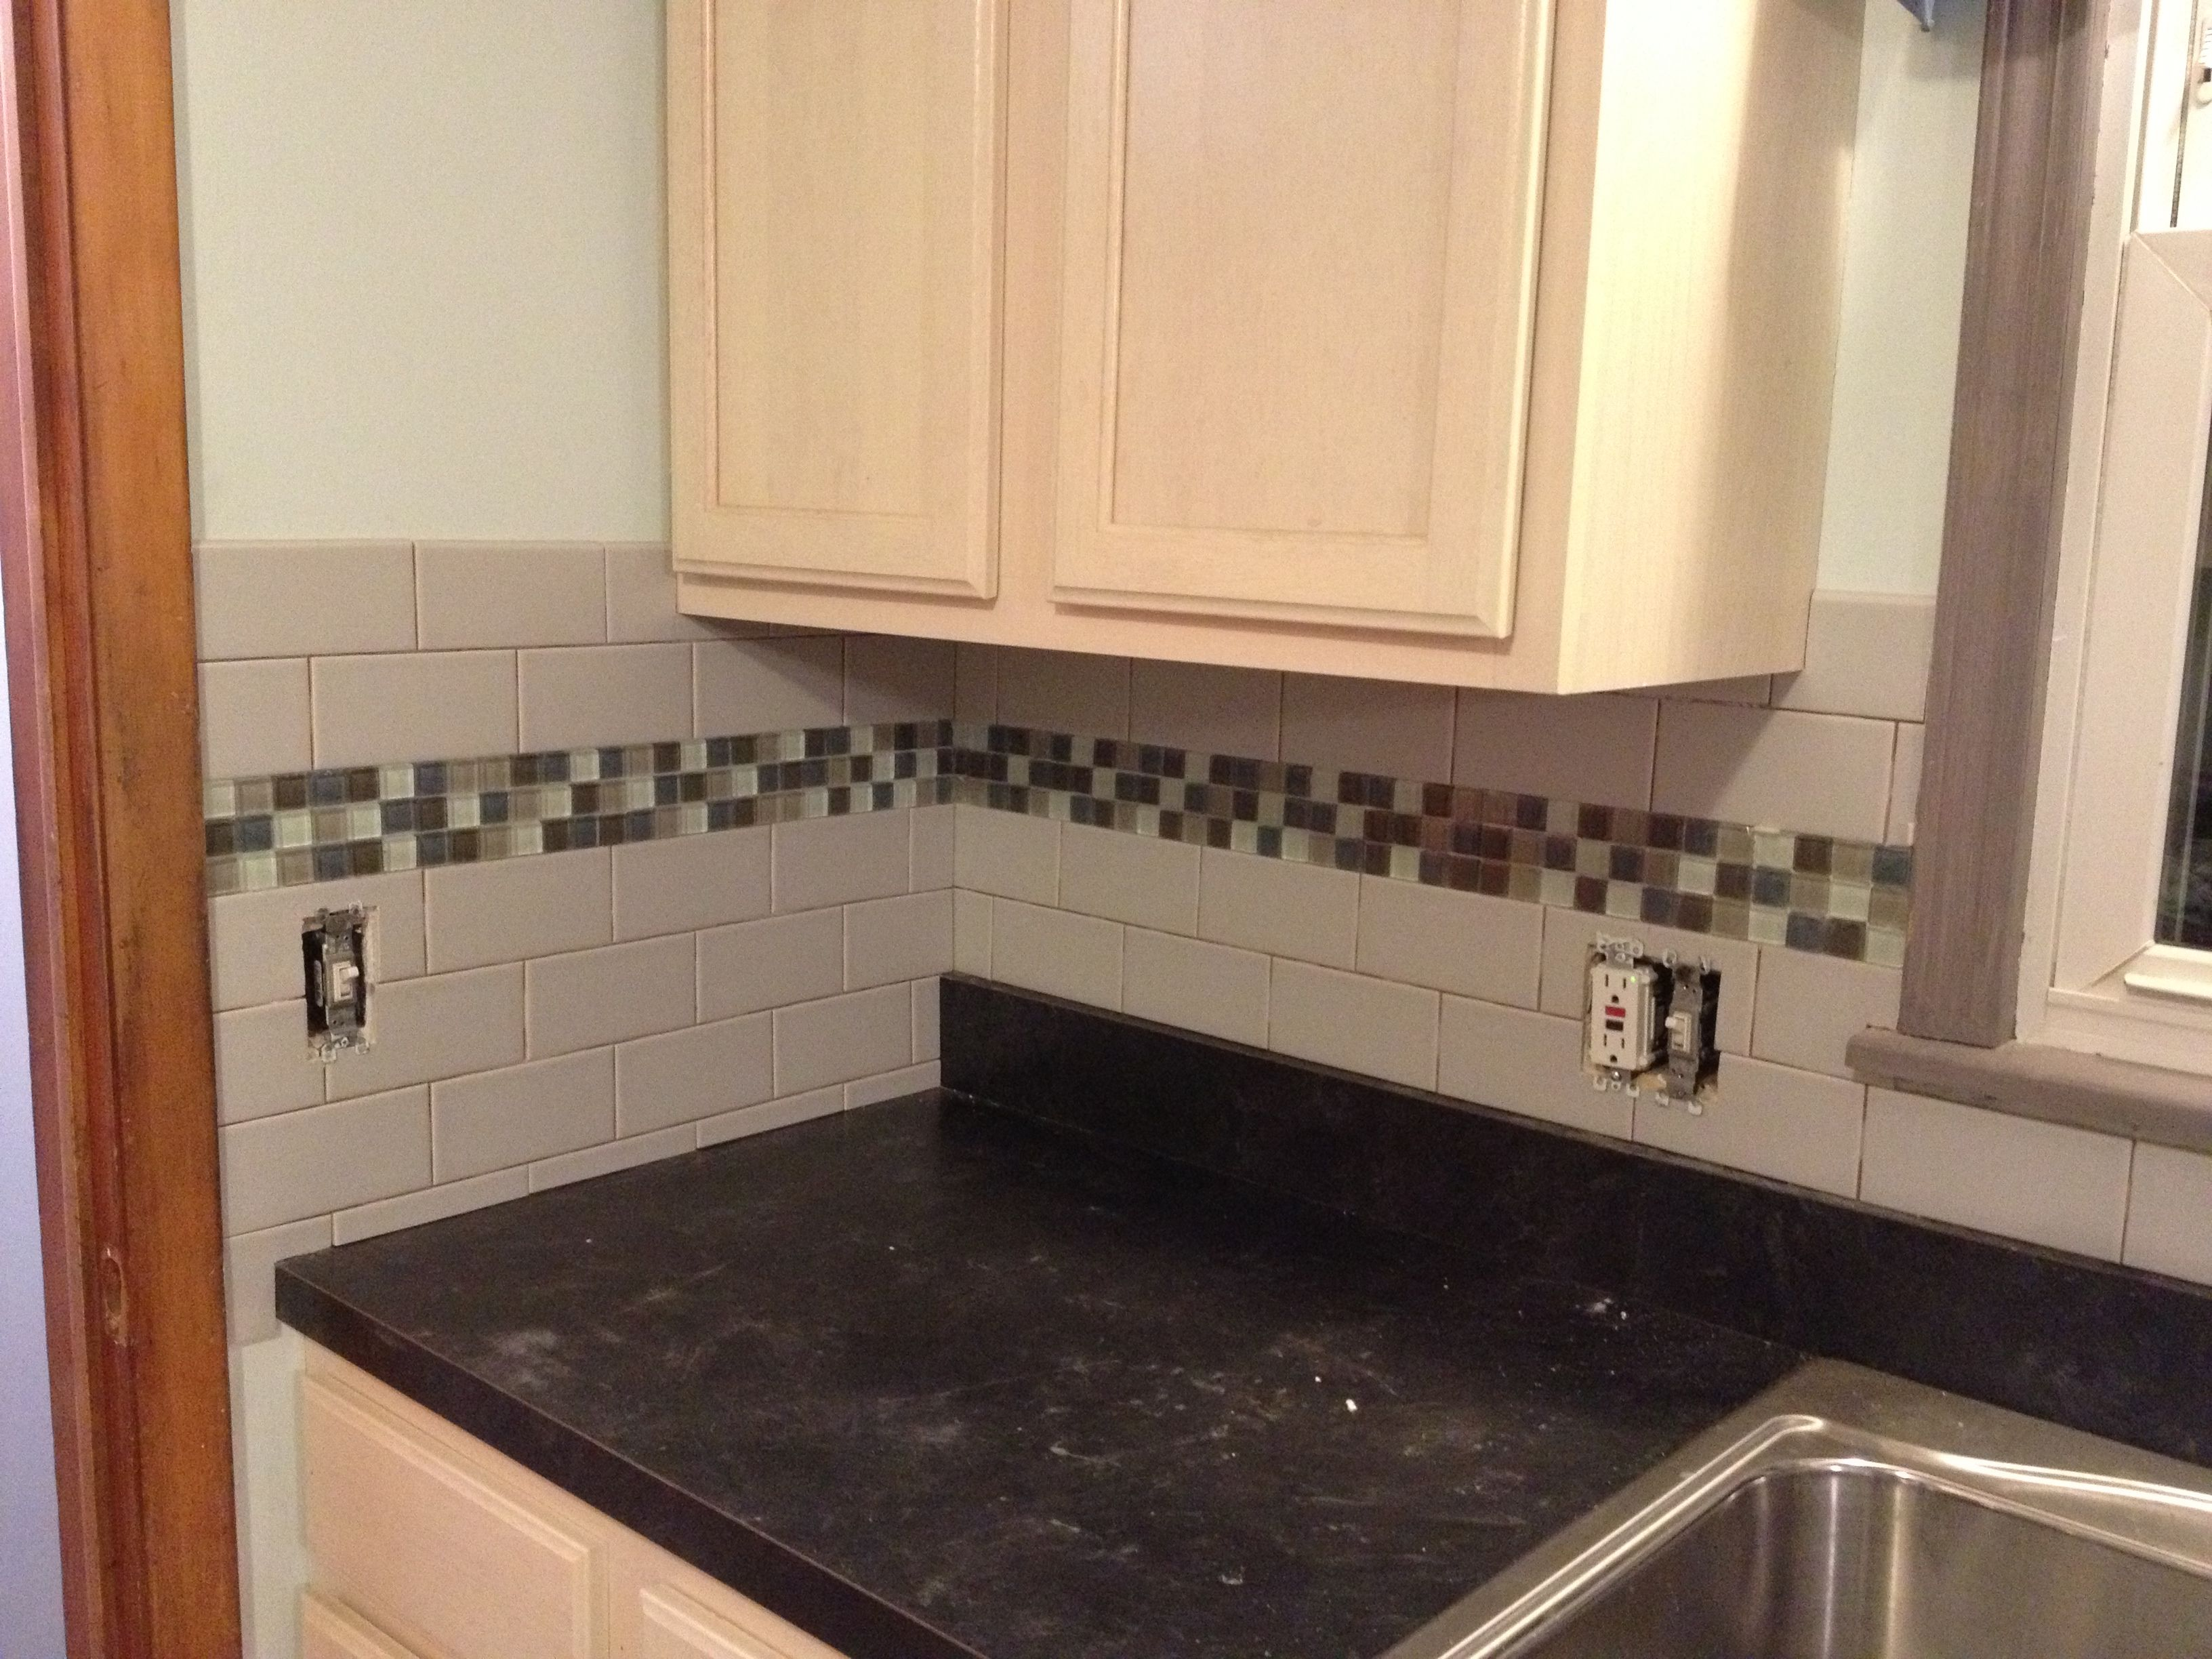 Kitchen Backsplash Accents subway tile backsplash with glass tile accent, love my kitchen